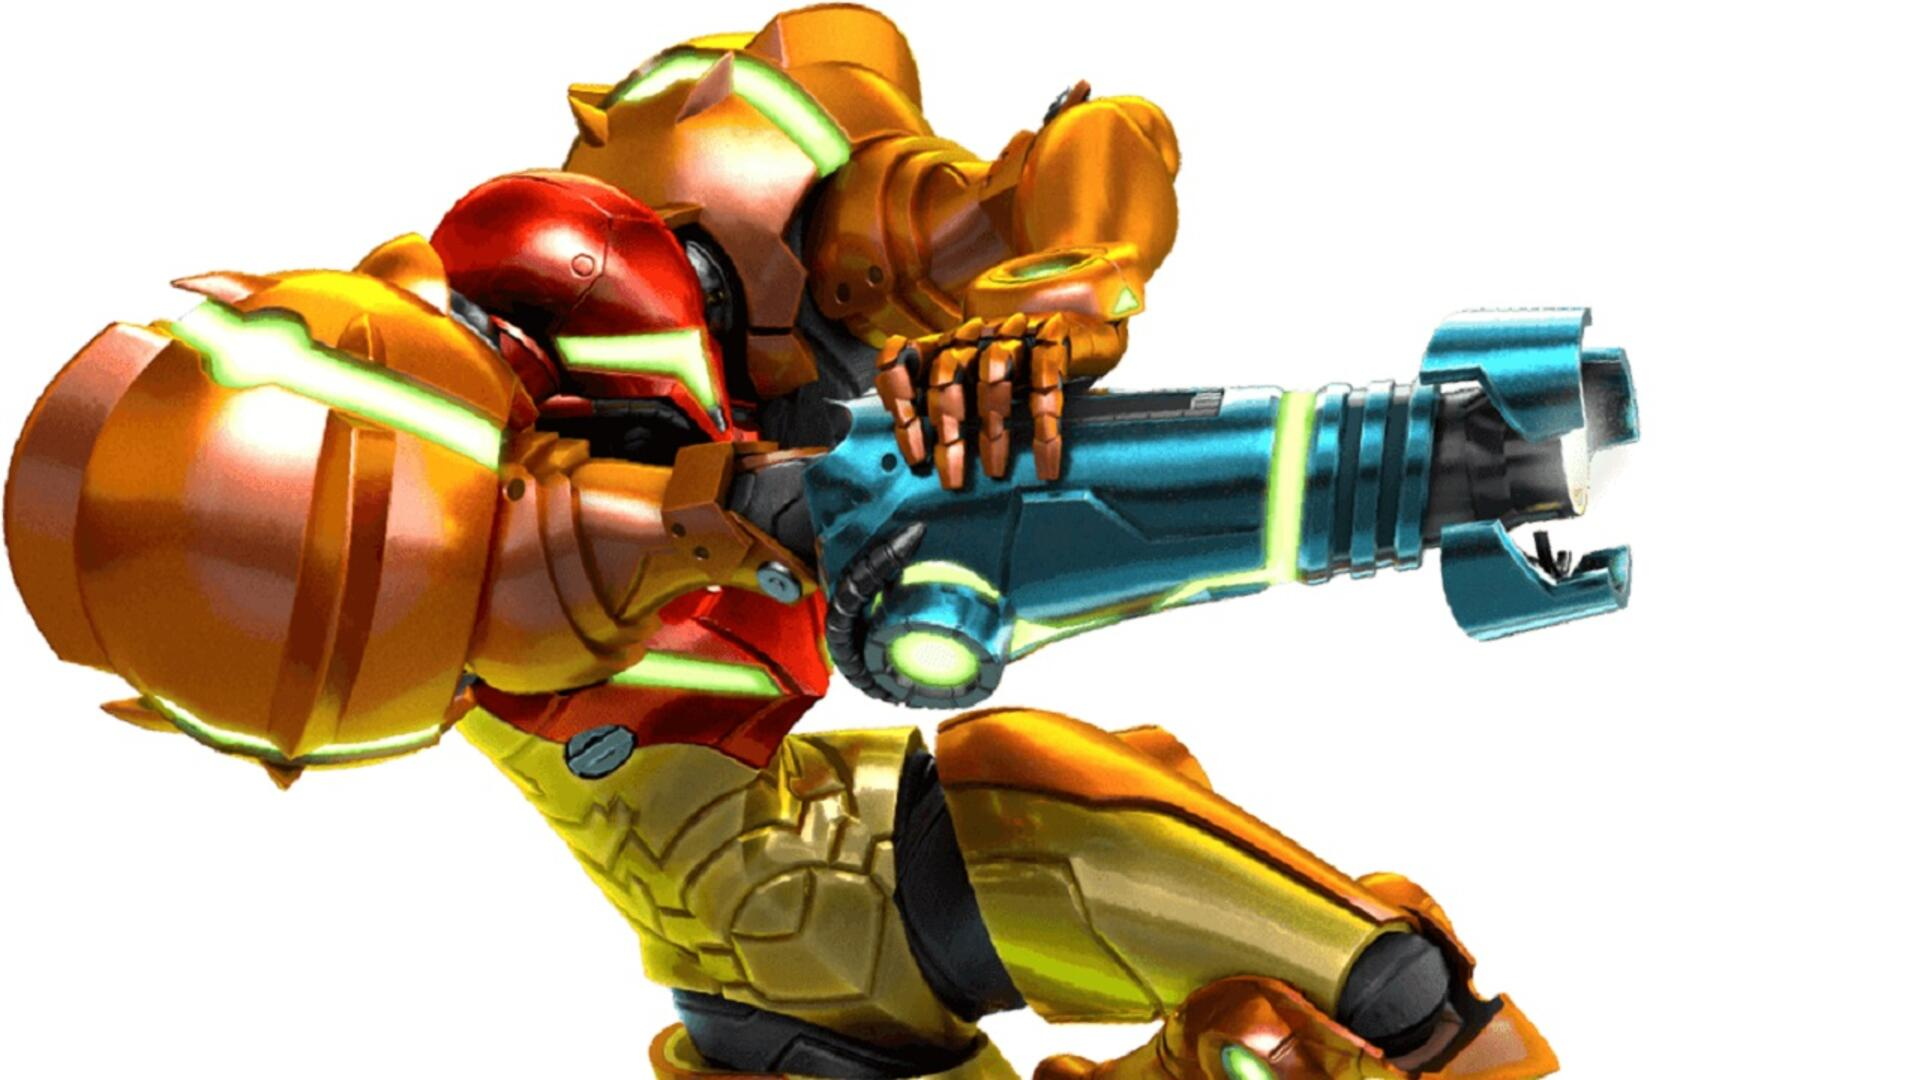 Metroid Prime 4, Friendly Fraud, and Our Dystopian Present